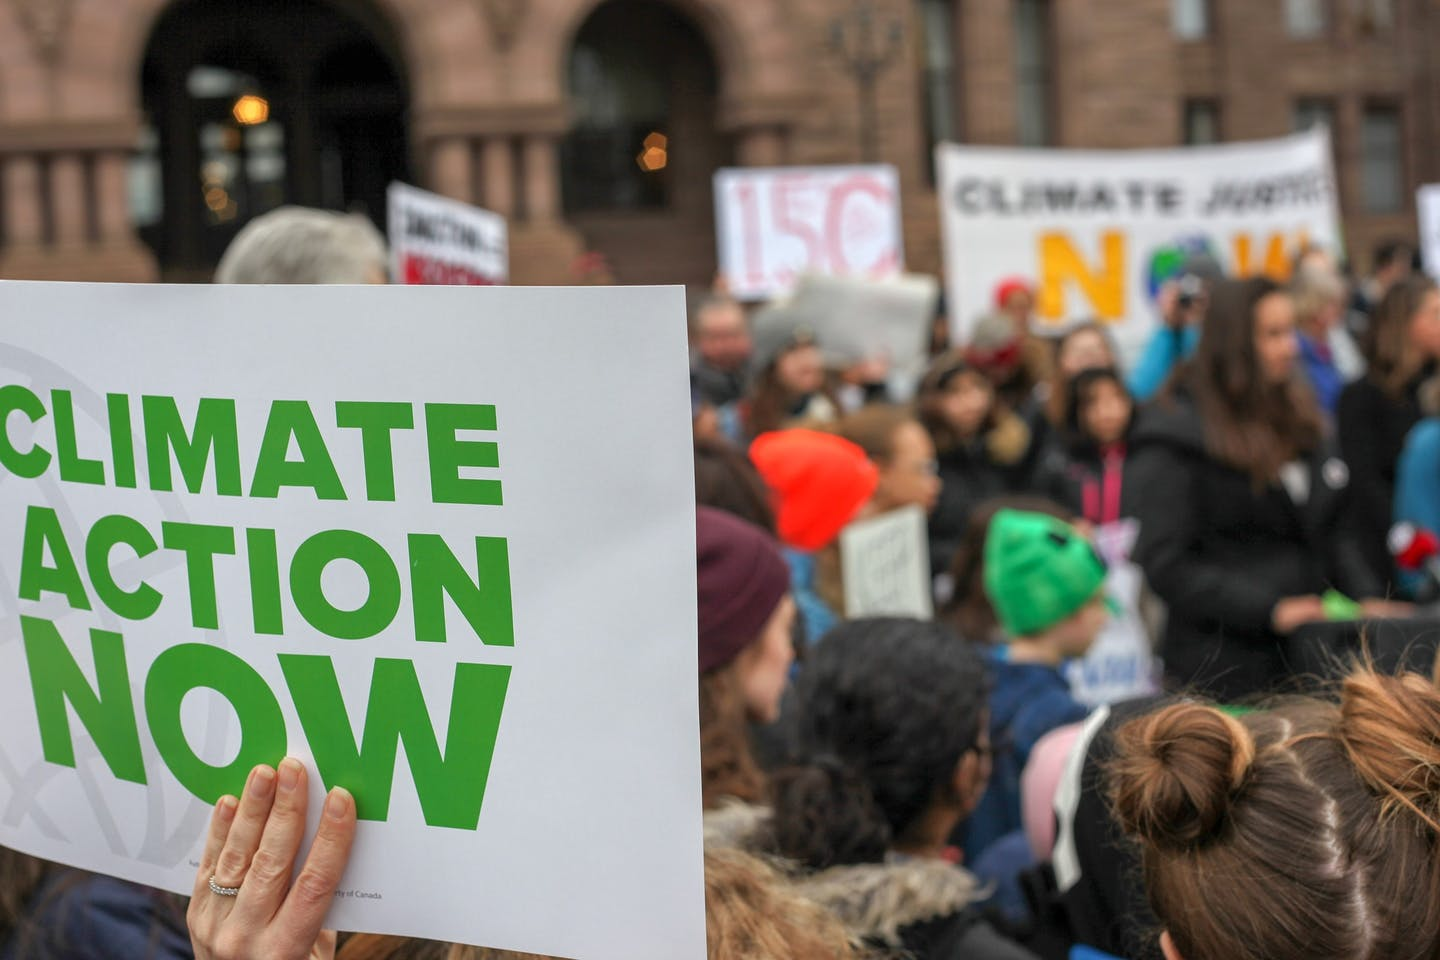 climate action now sign